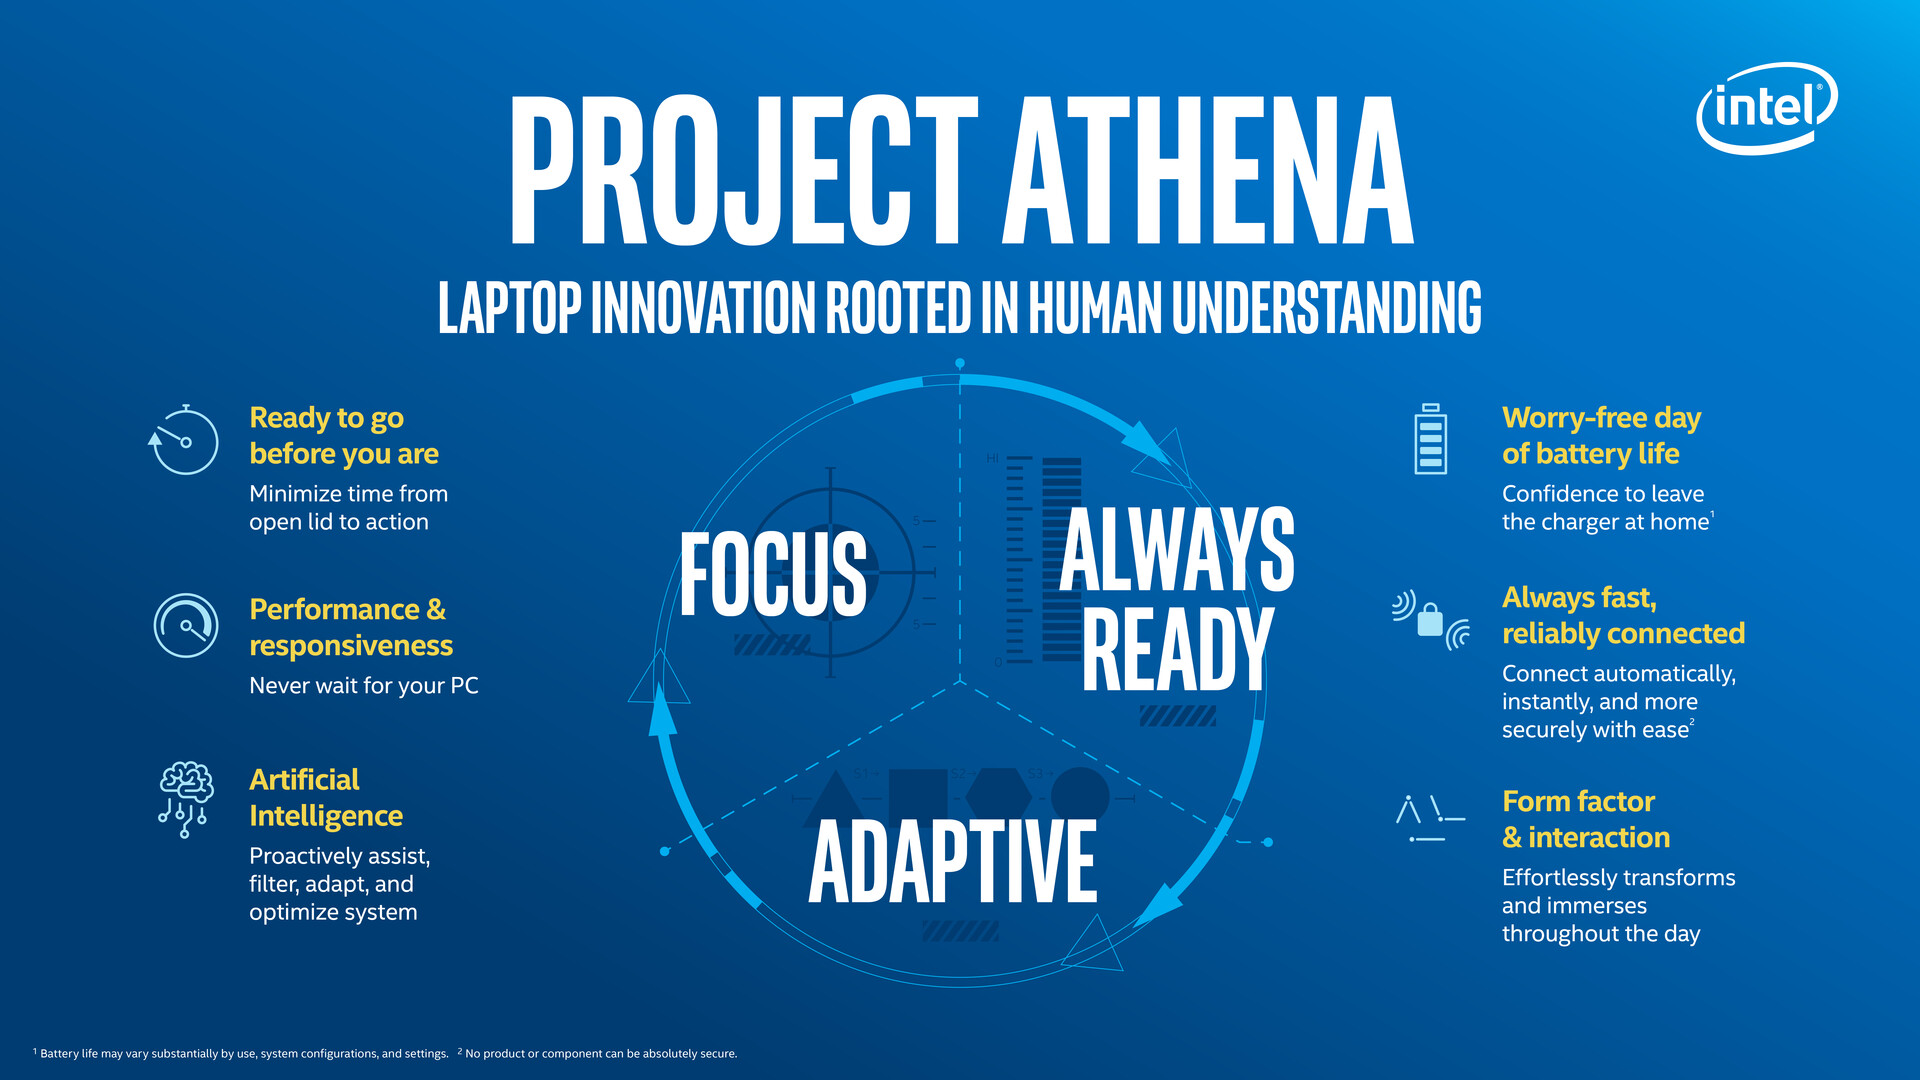 Intel's Project Athena labs aim to kick laptop makers into shape